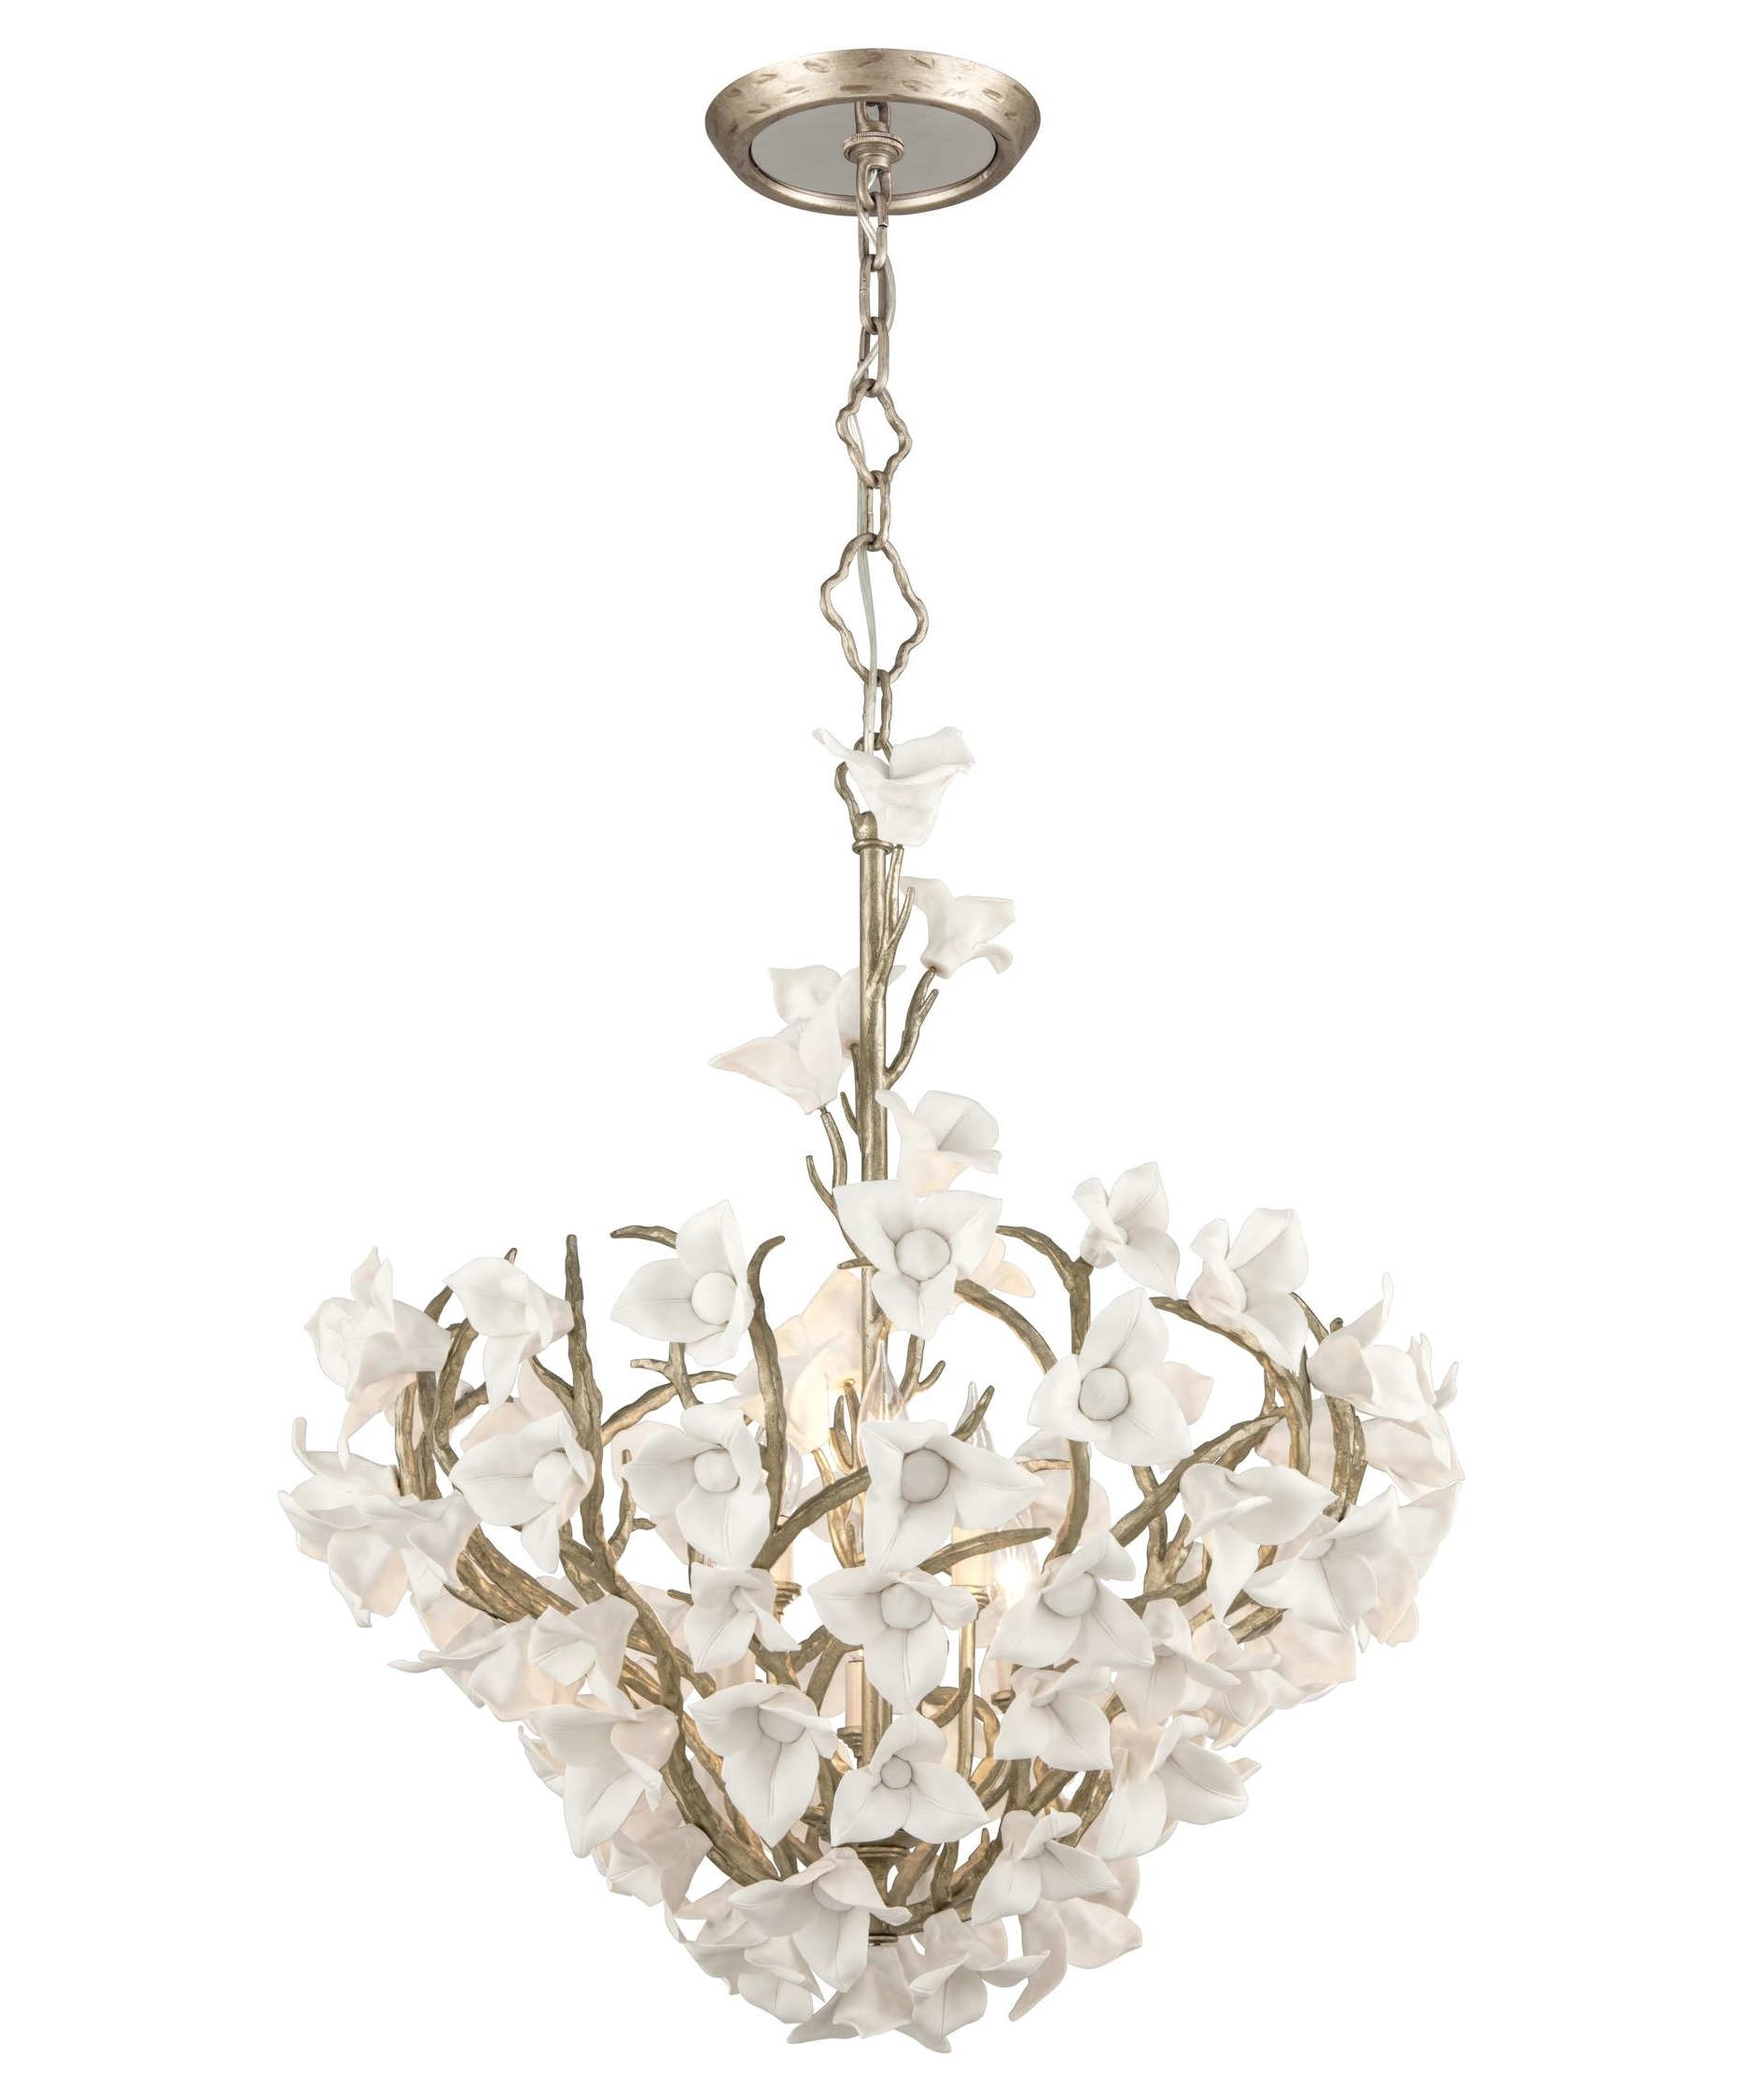 Preferred Corbett Lighting 211 47 Lily 26 Inch Wide 6 Light Large Pendant Within Lily Chandeliers (View 5 of 15)